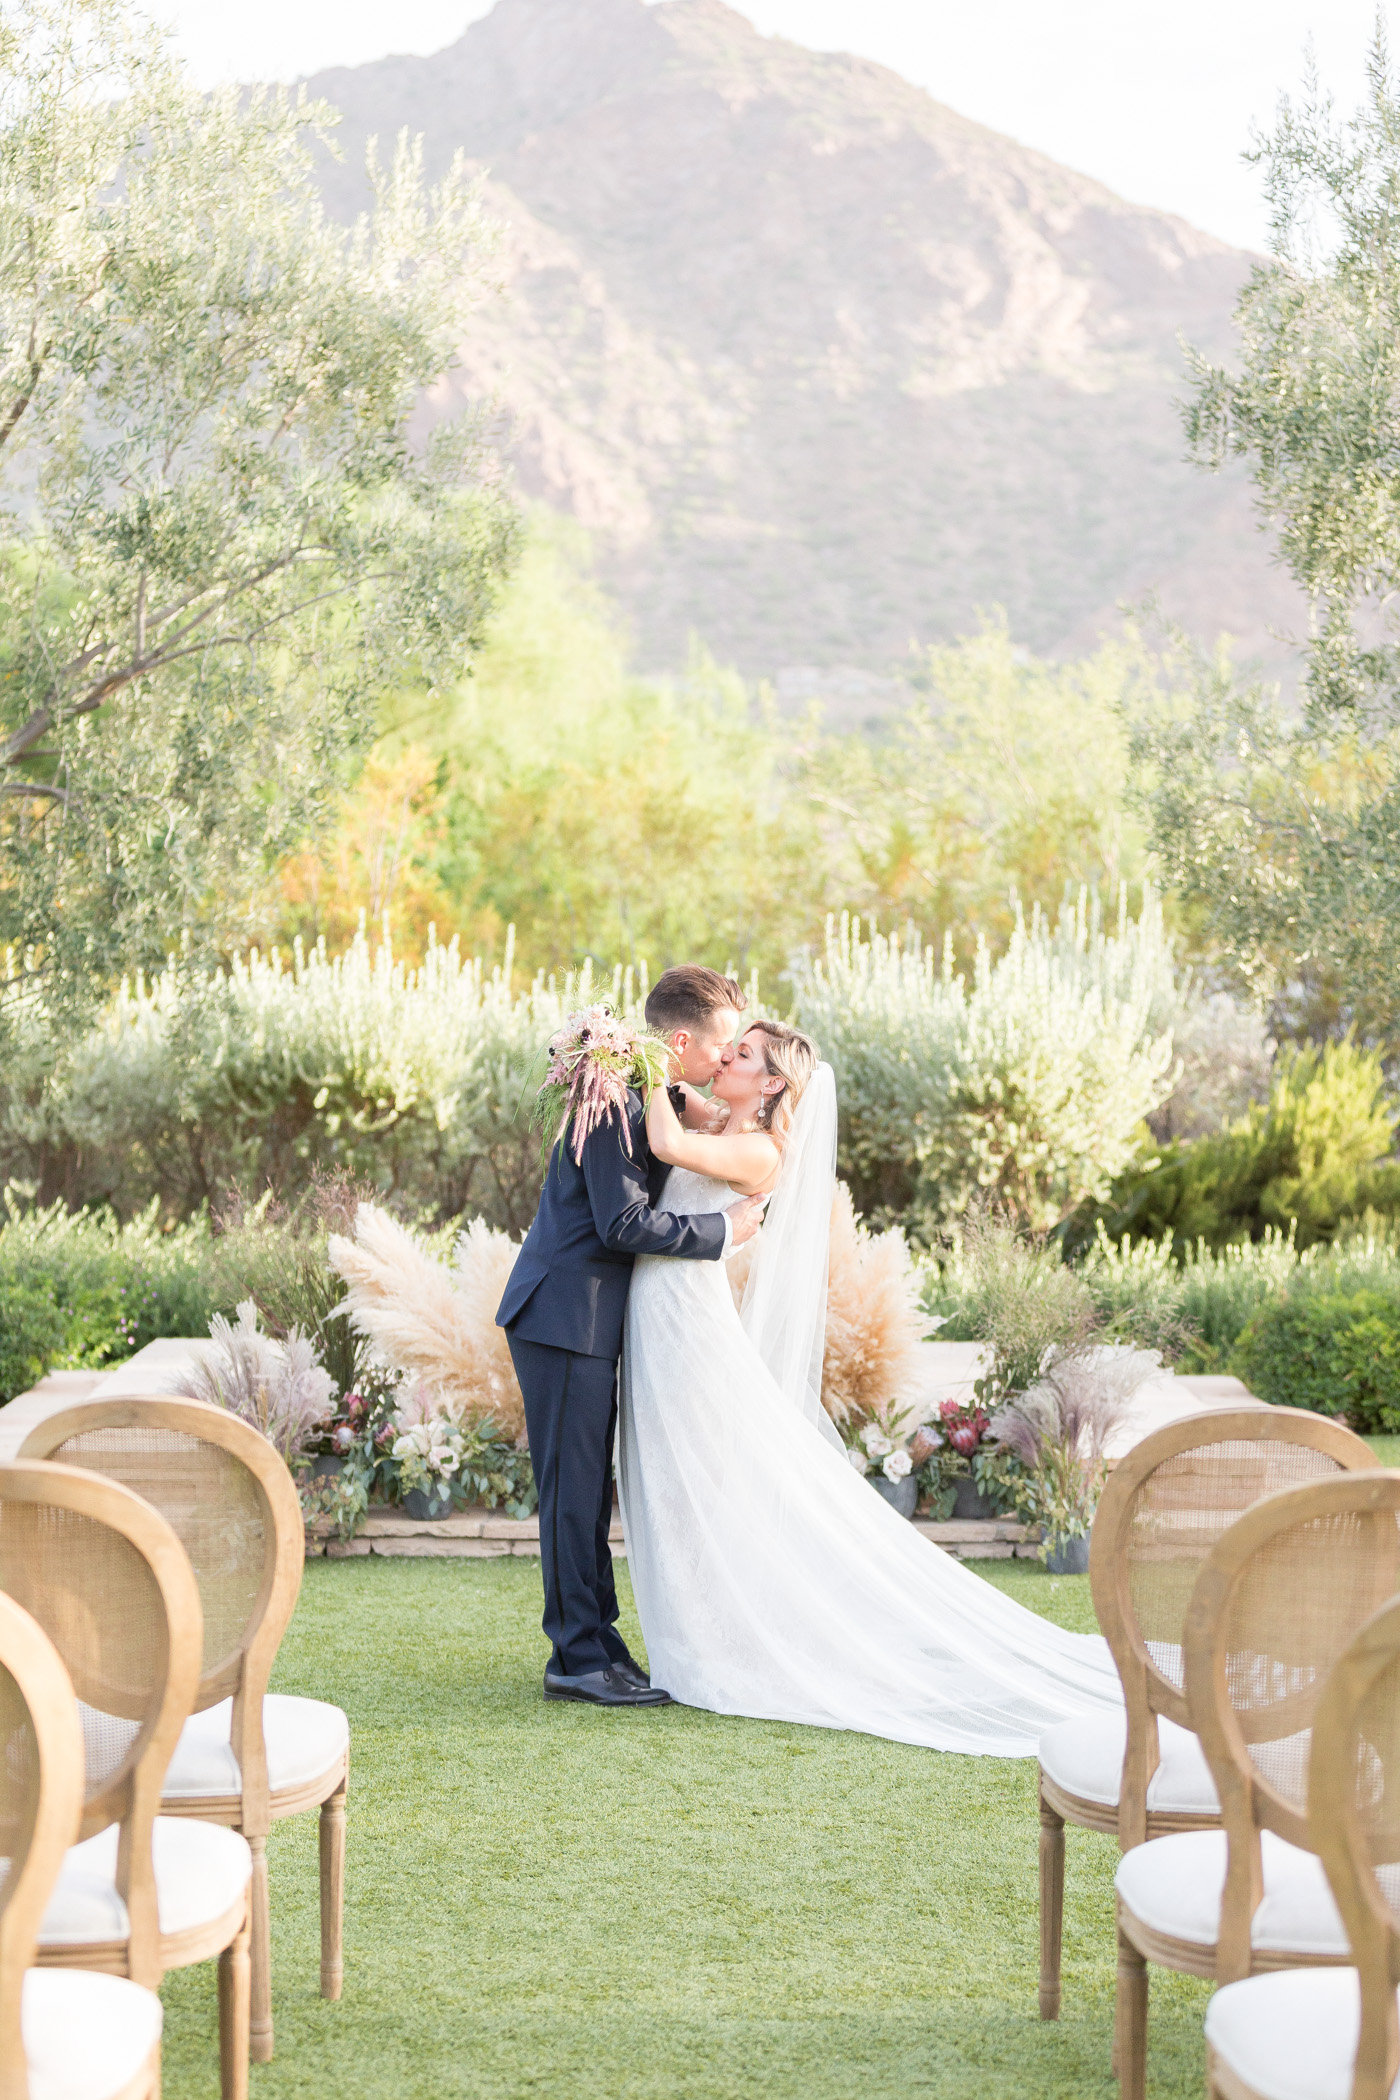 Cheerful Desert Wedding Inspiration with Bright Yellow - photo by Karlee K Photography http://ruffledblog.com/cheerful-desert-wedding-inspiration-with-bright-yellow